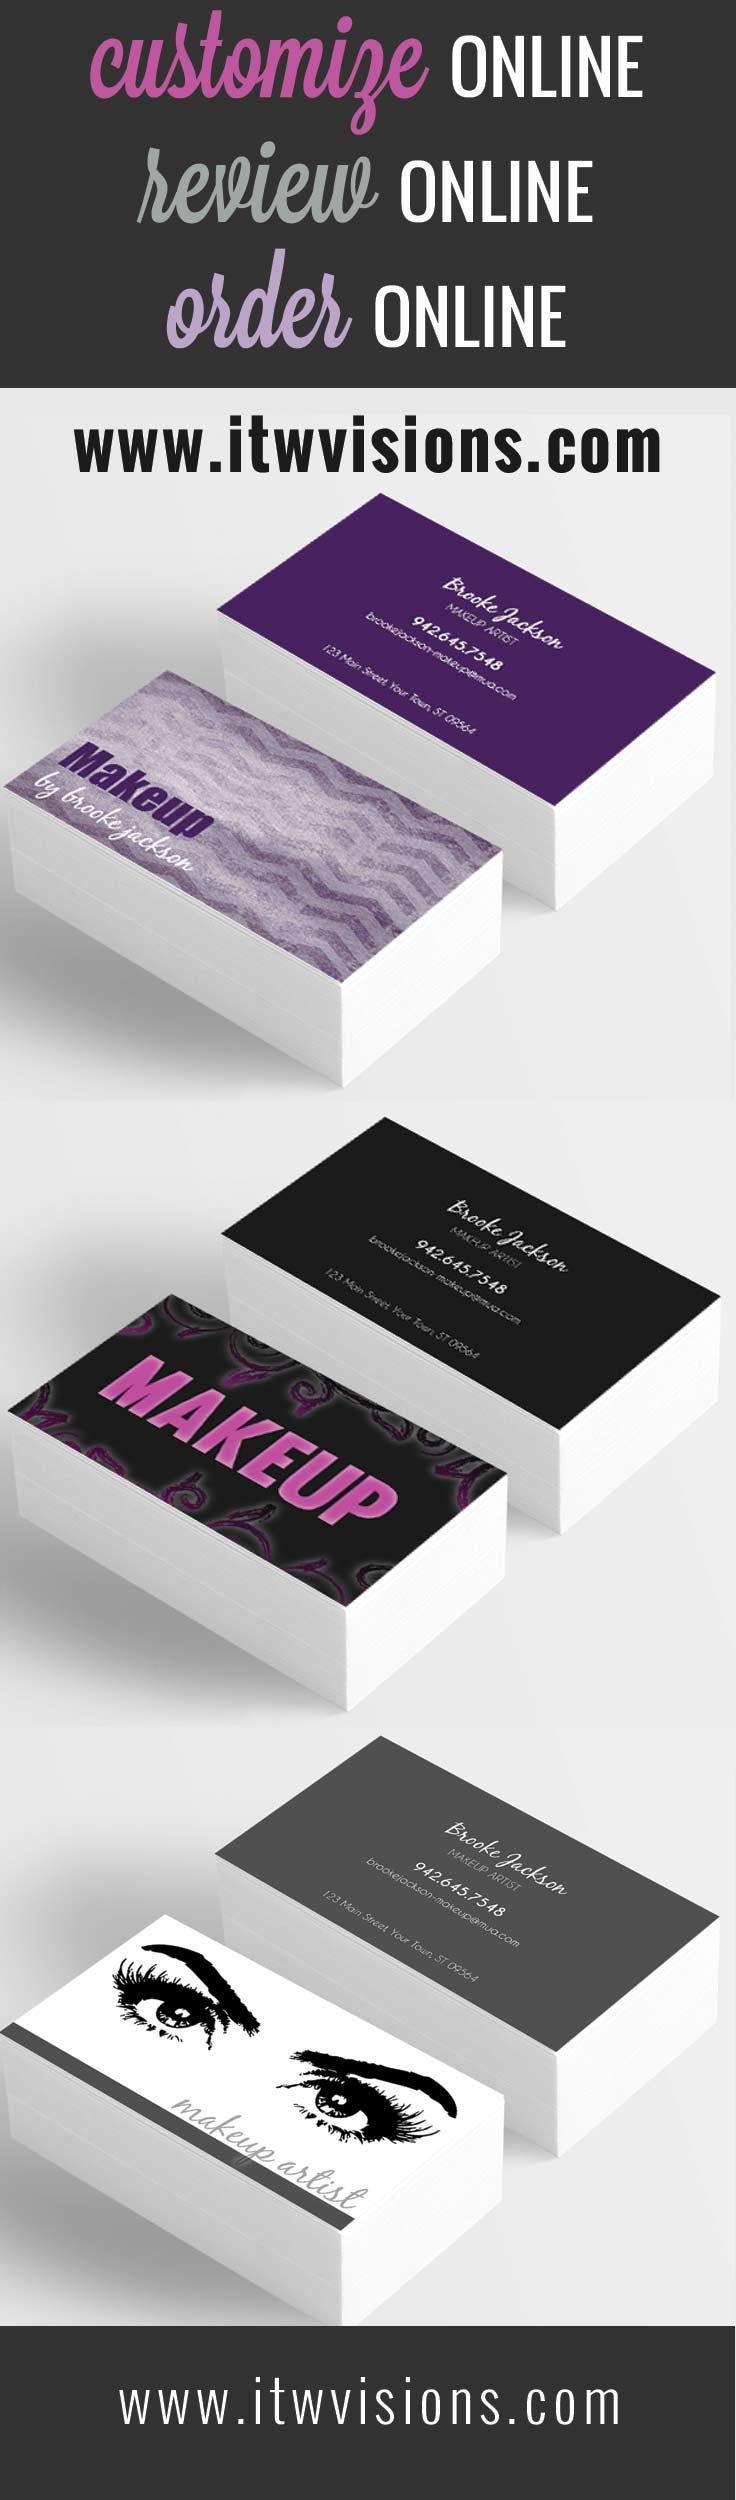 26 best business cards images on Pinterest | Lularoe business cards ...